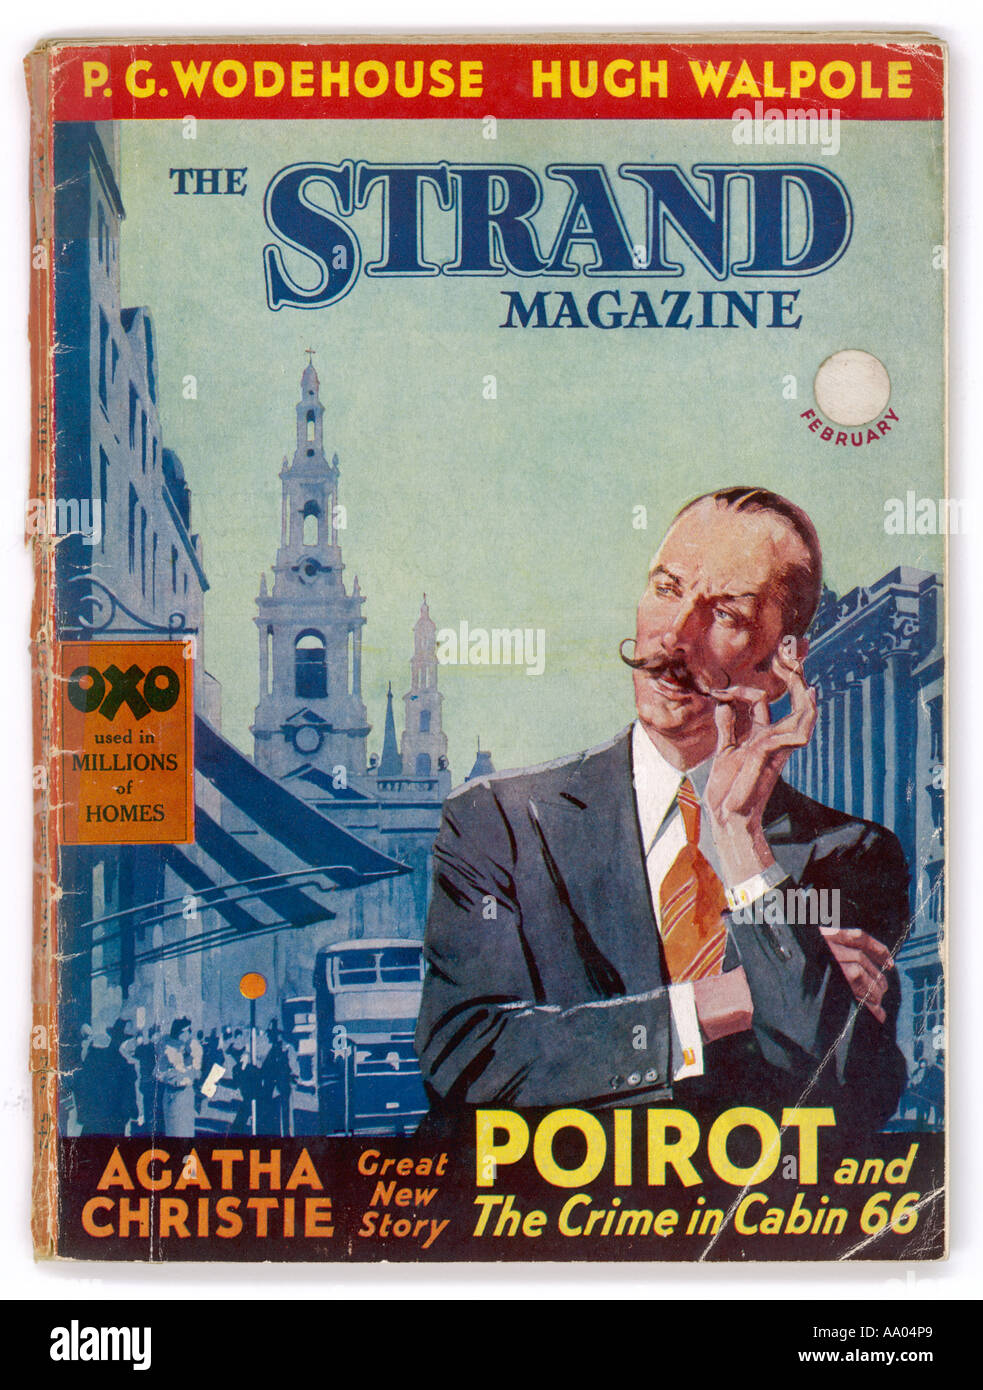 Christie Poirot Cover - Stock Image